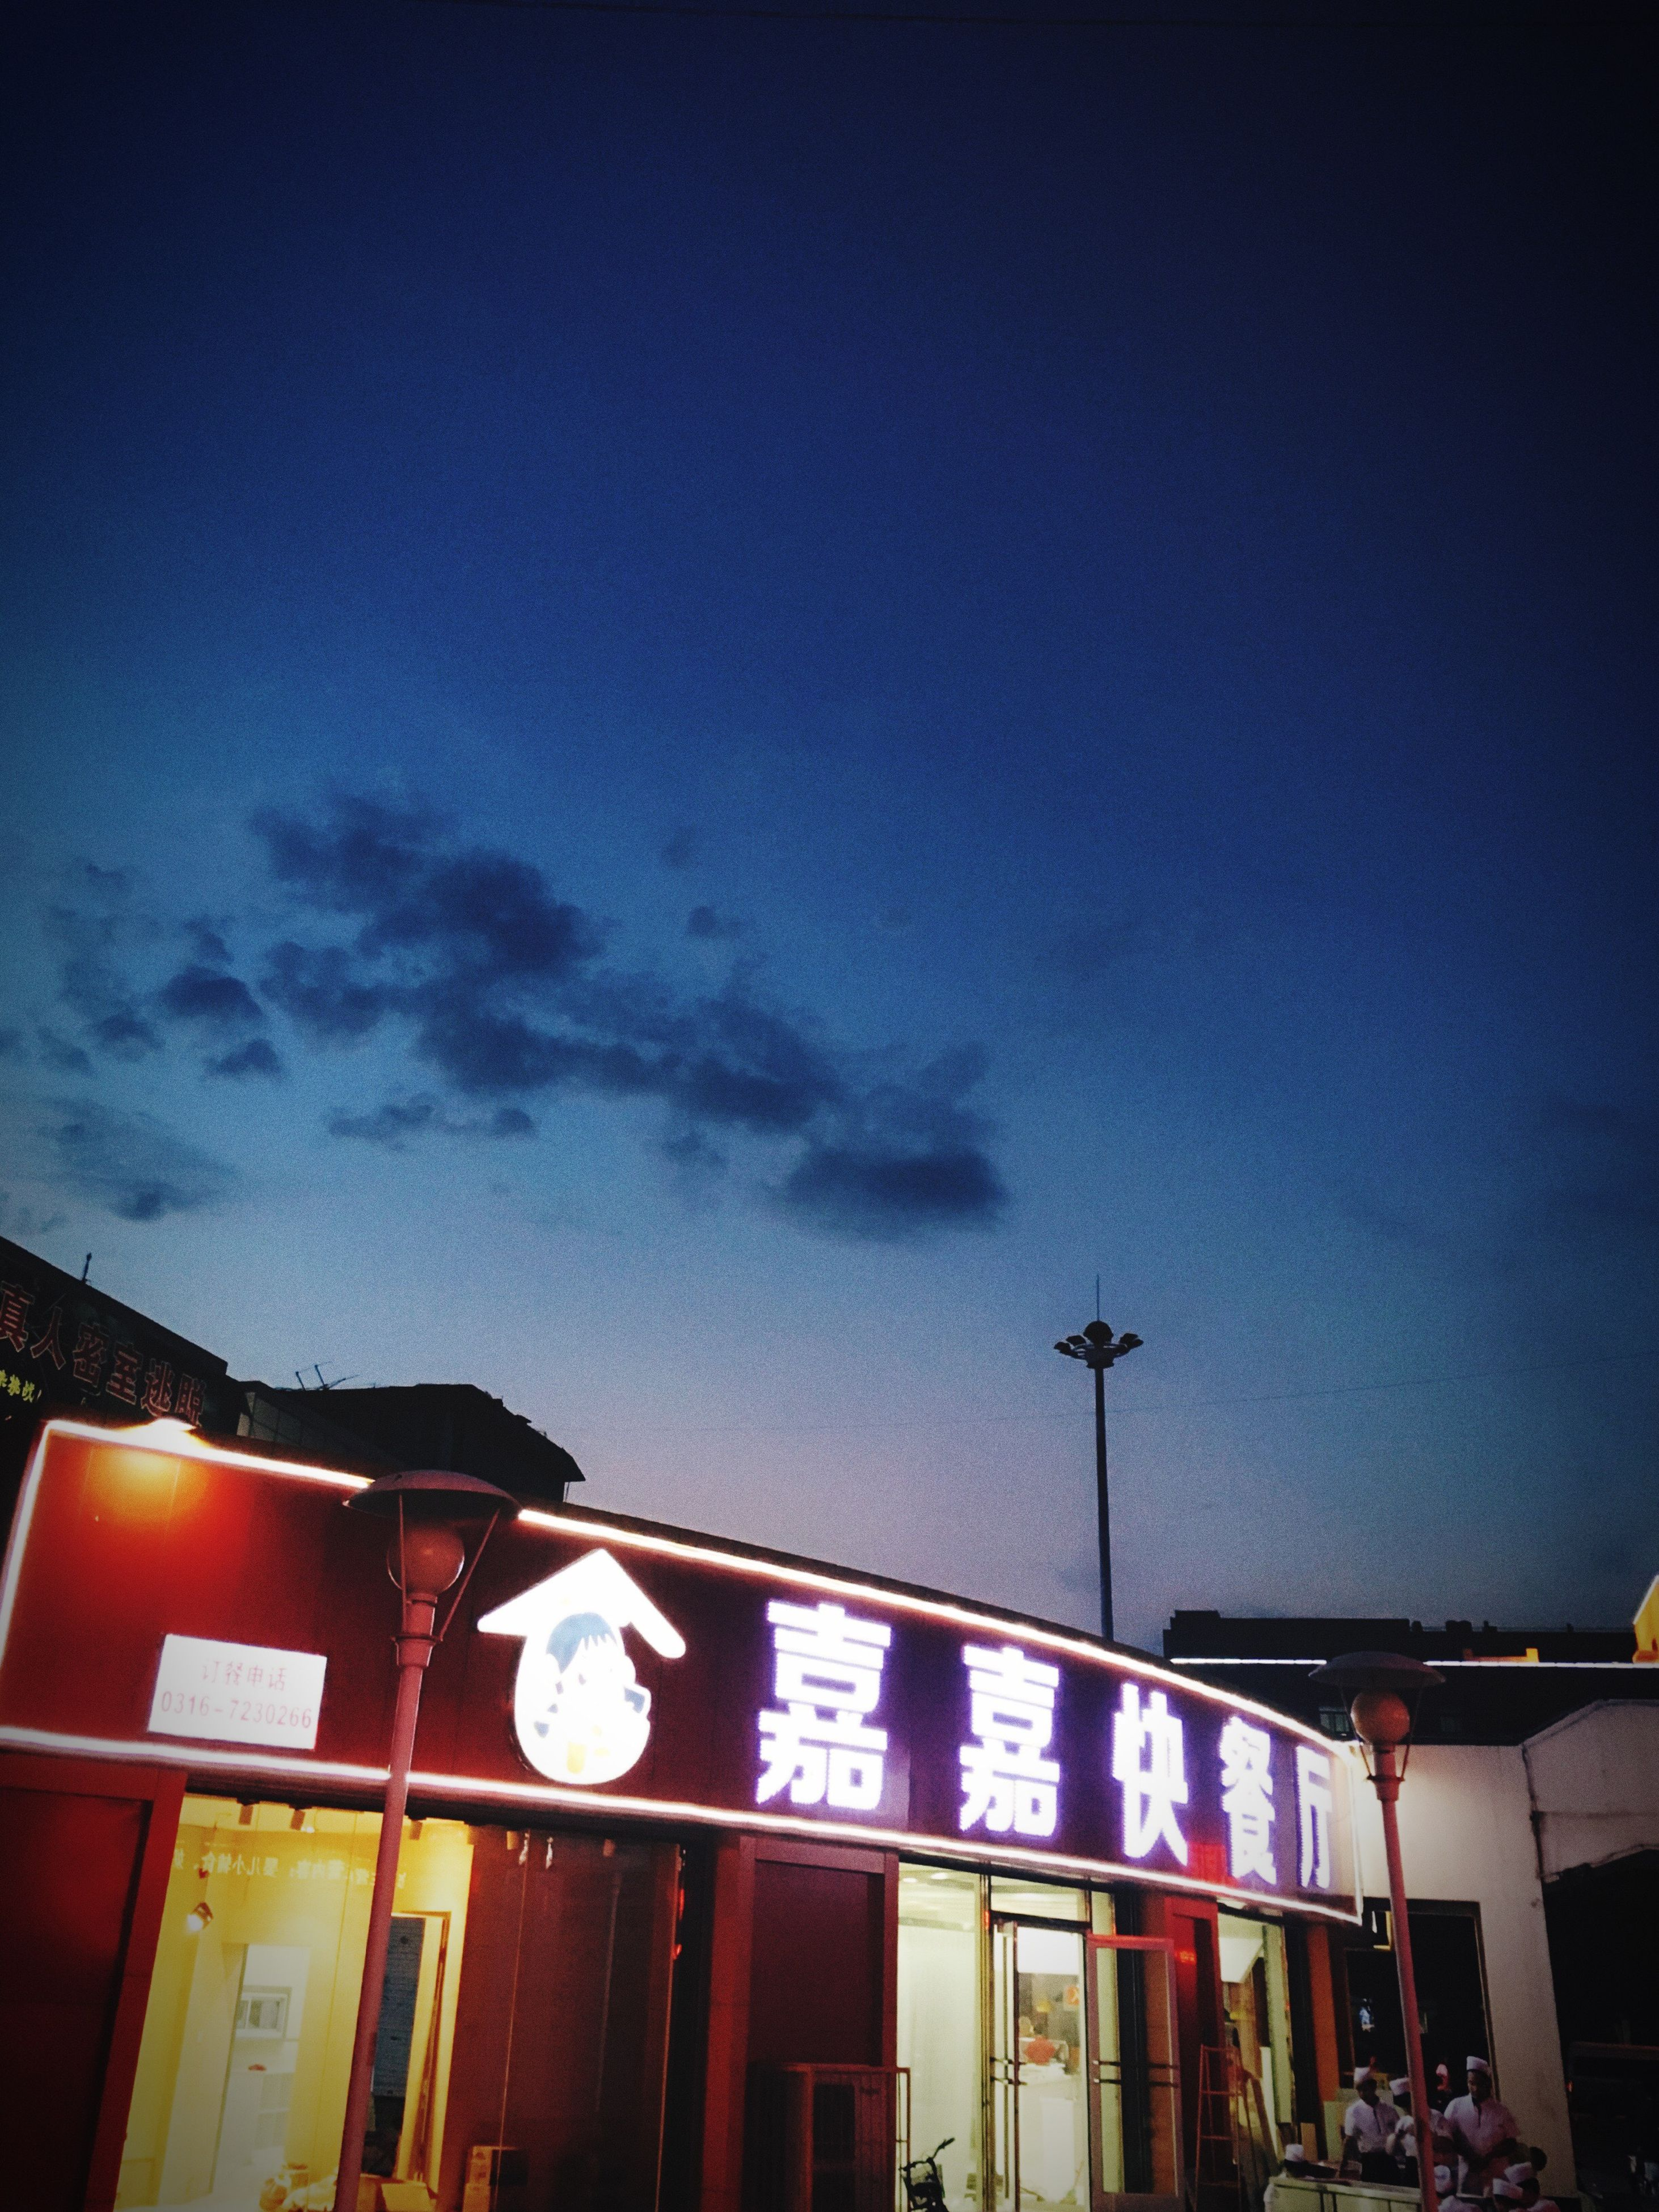 low angle view, built structure, architecture, sky, building exterior, illuminated, night, street light, lighting equipment, dusk, cloud - sky, city, building, outdoors, text, transportation, blue, cloud, no people, communication